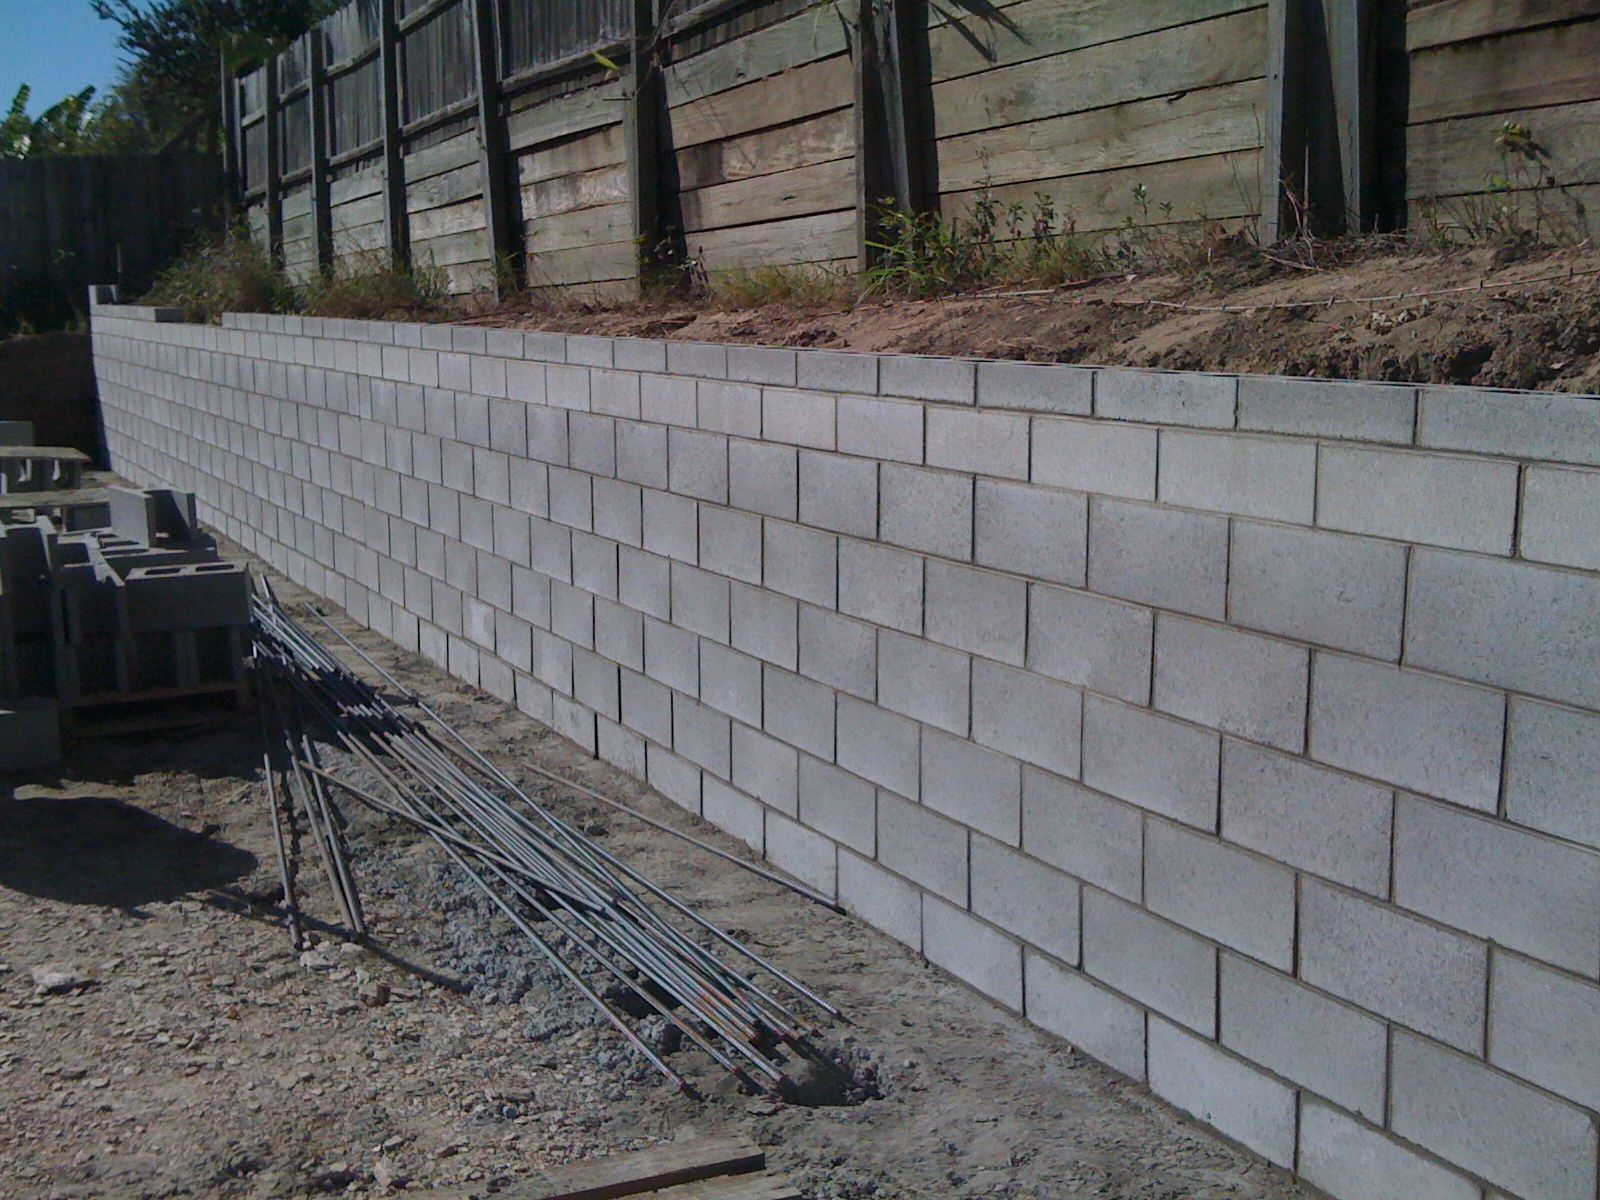 Retaining Wall Blocks Design retaining wall blocks design 47 decor decorating in retaining wall blocks design Cinder Block Retaining Wall Design Narrow Home Design Concrete